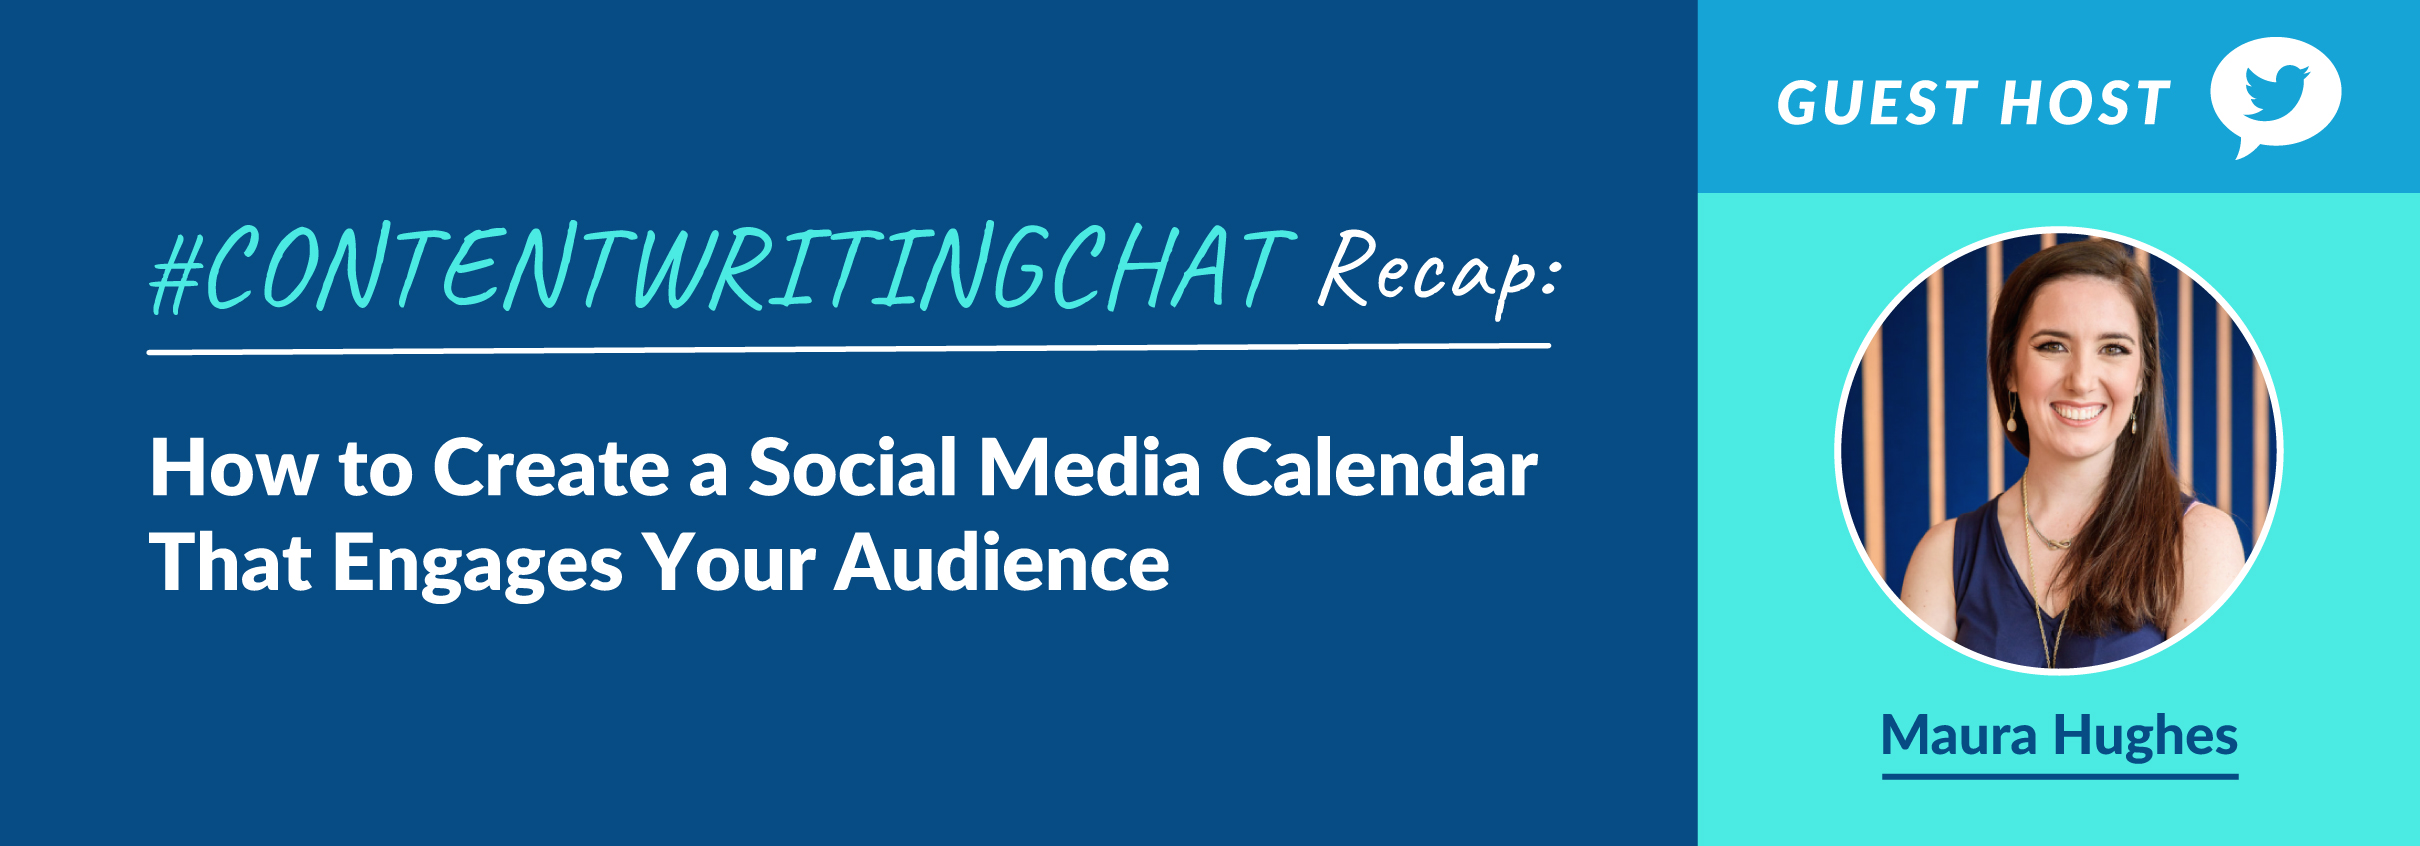 #ContentWritingChat Recap: How to Create a Social Media Calendar That Engages Your Audience with Maura Hughes of MeetEdgar